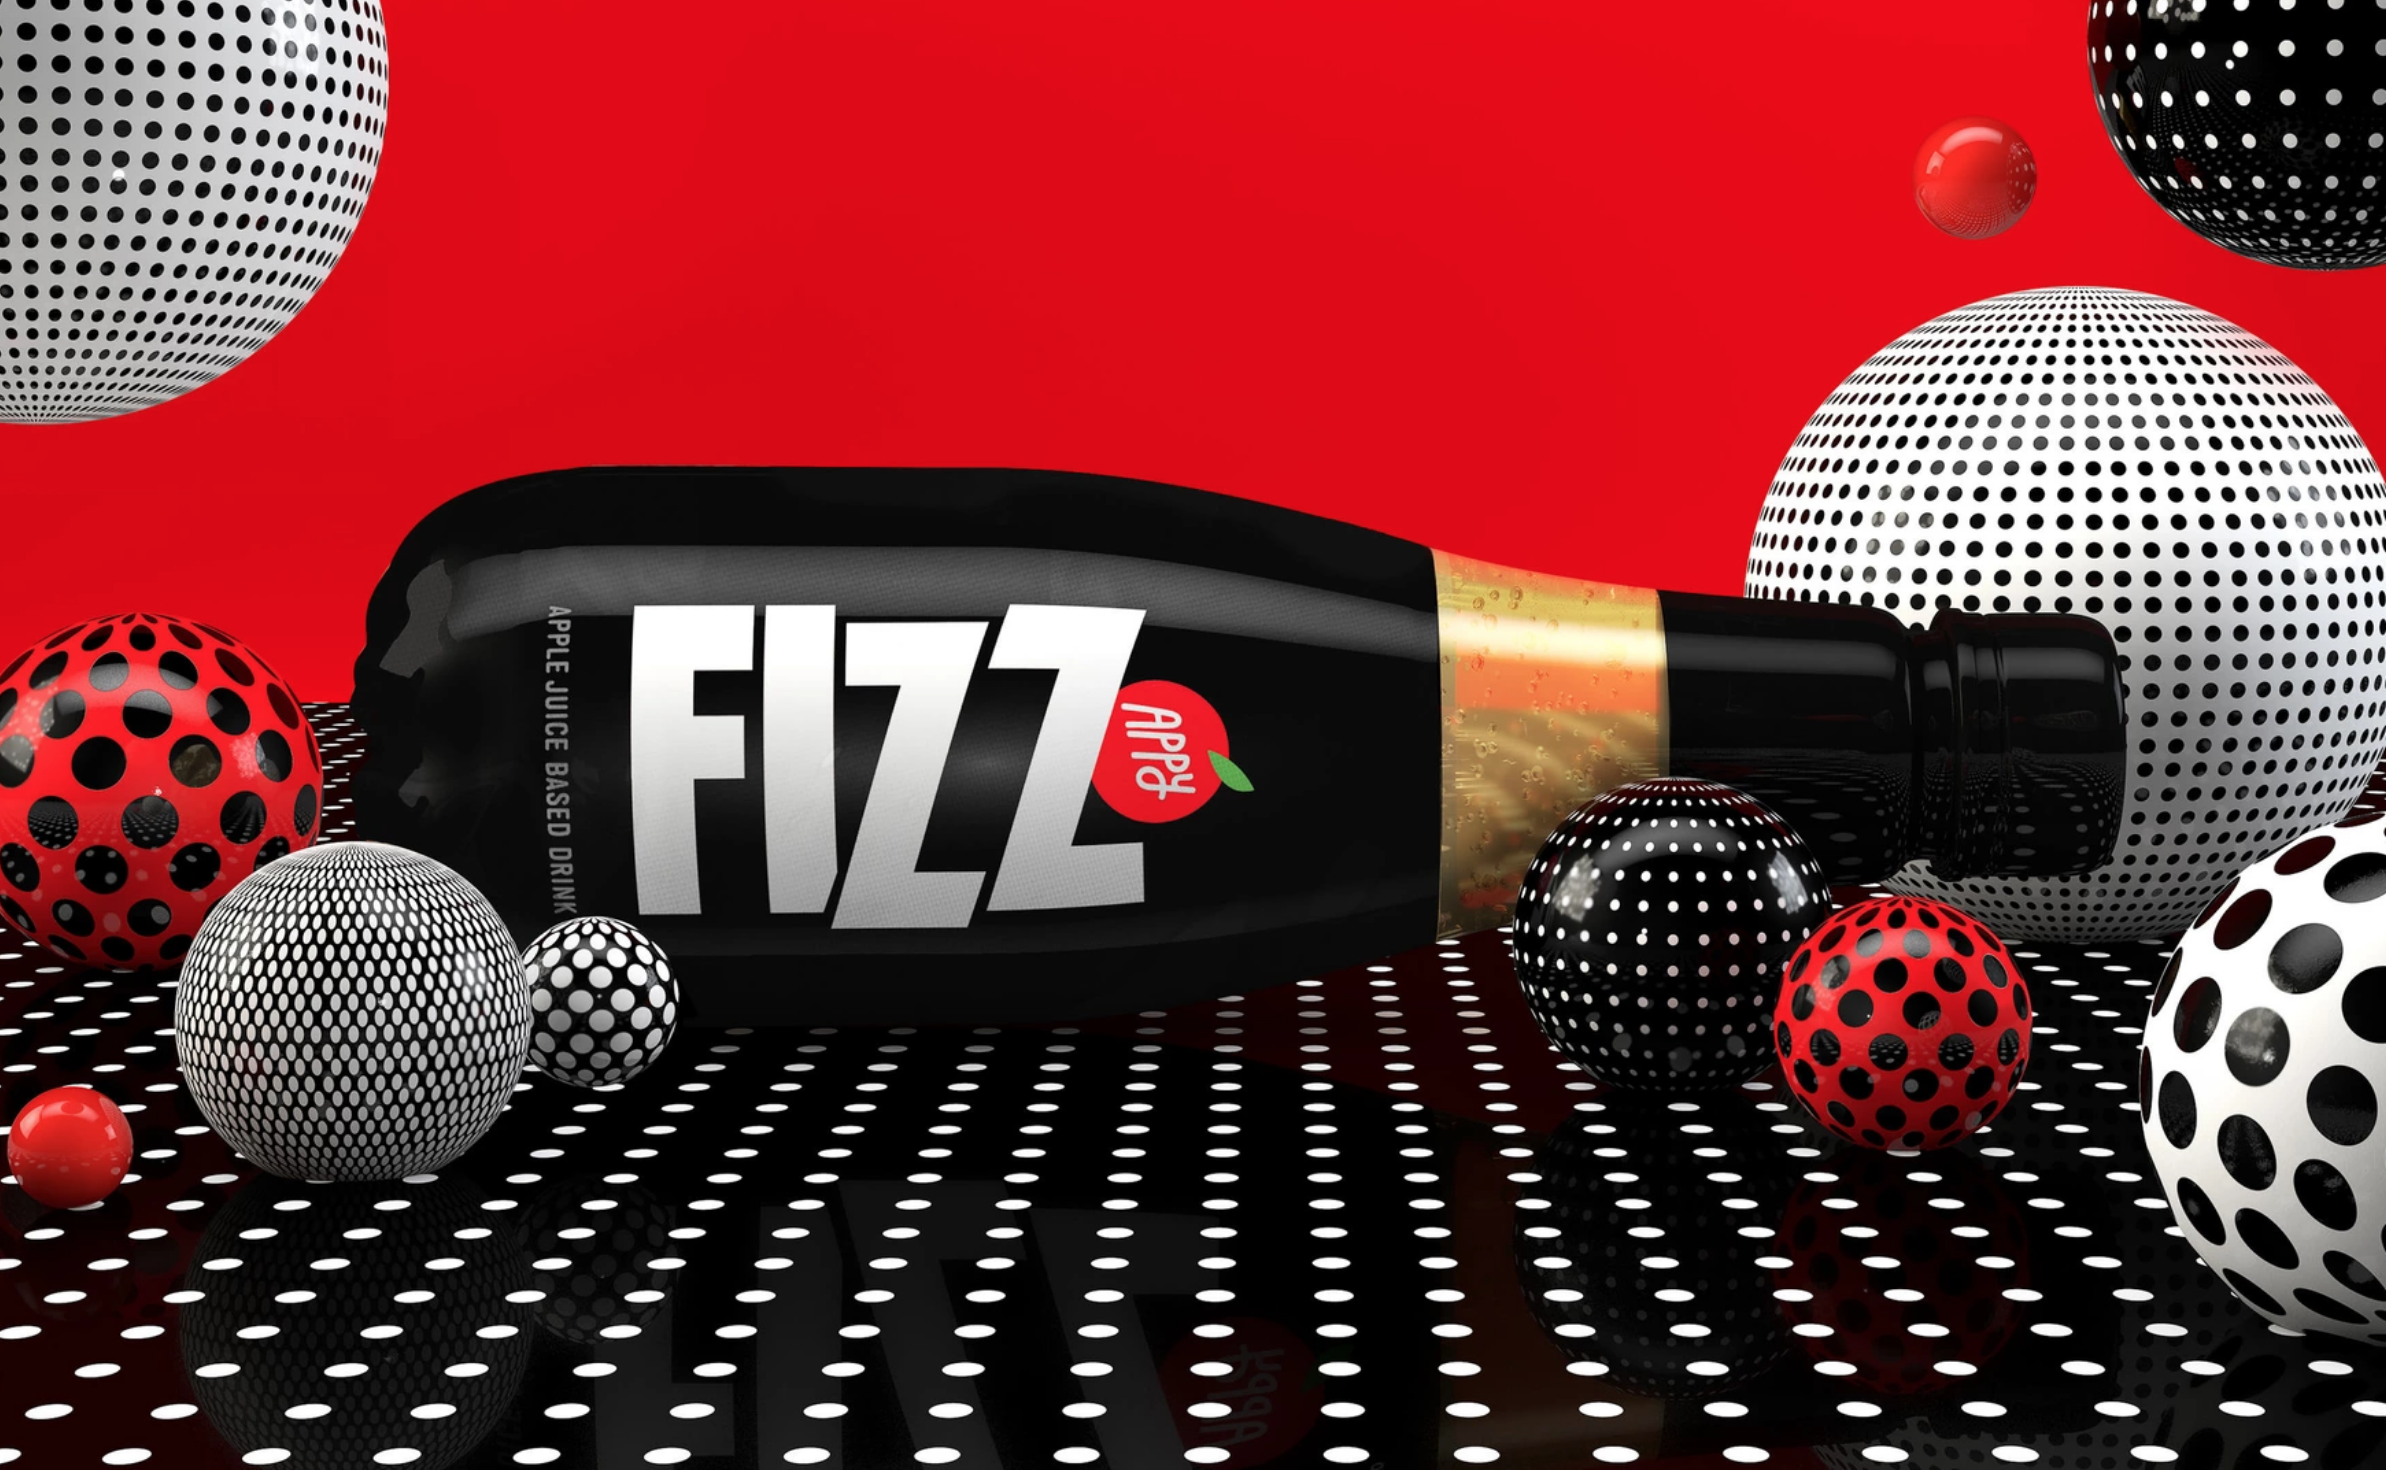 Appy Fizz - By Sagmeister & Walsh